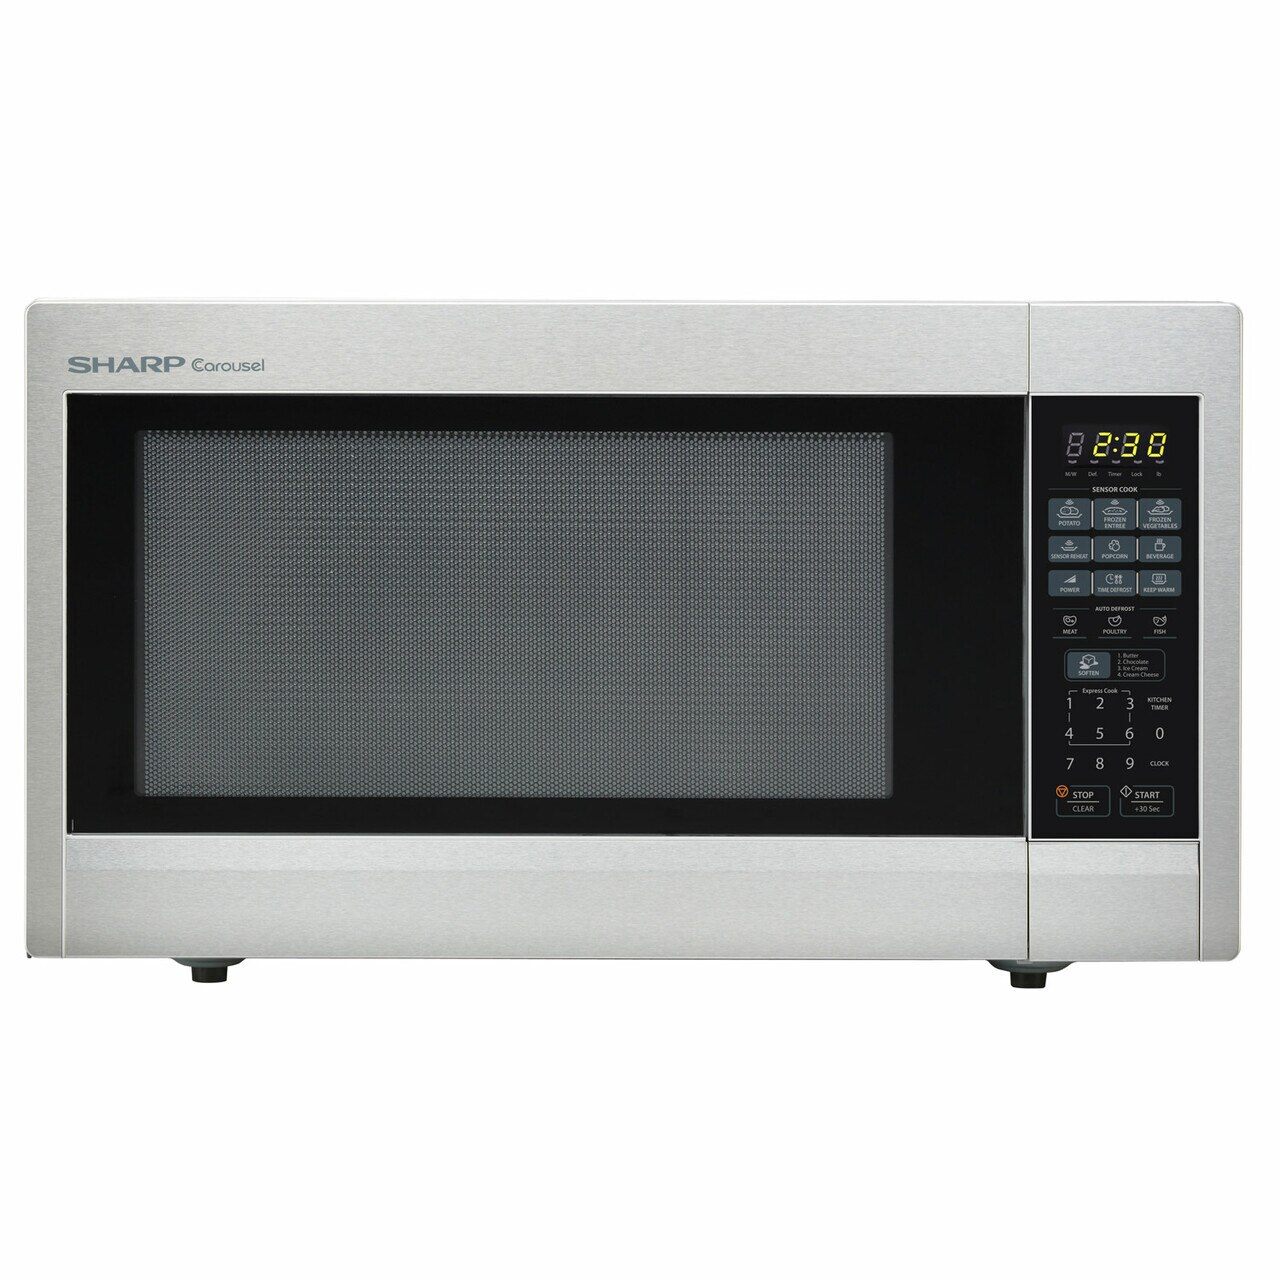 2.2 cu. ft. Stainless Steel Countertop Microwave (R651ZS)